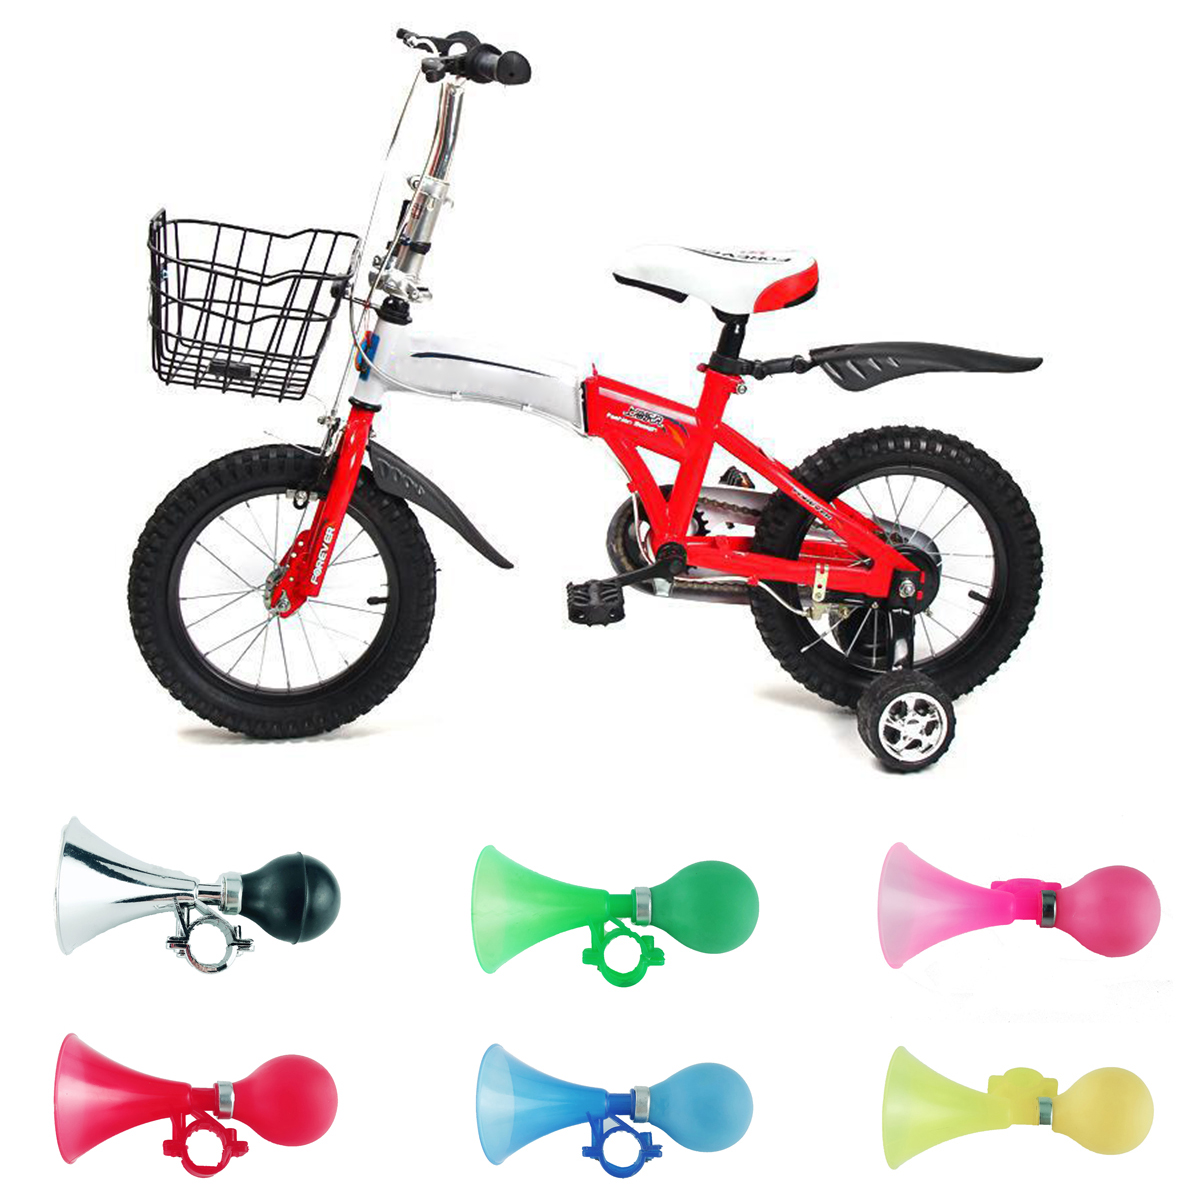 Kids Bike Alarm Bell Silicone Hooter Child Bicycle Squeeze Horn Toy Hoo L/_D SK